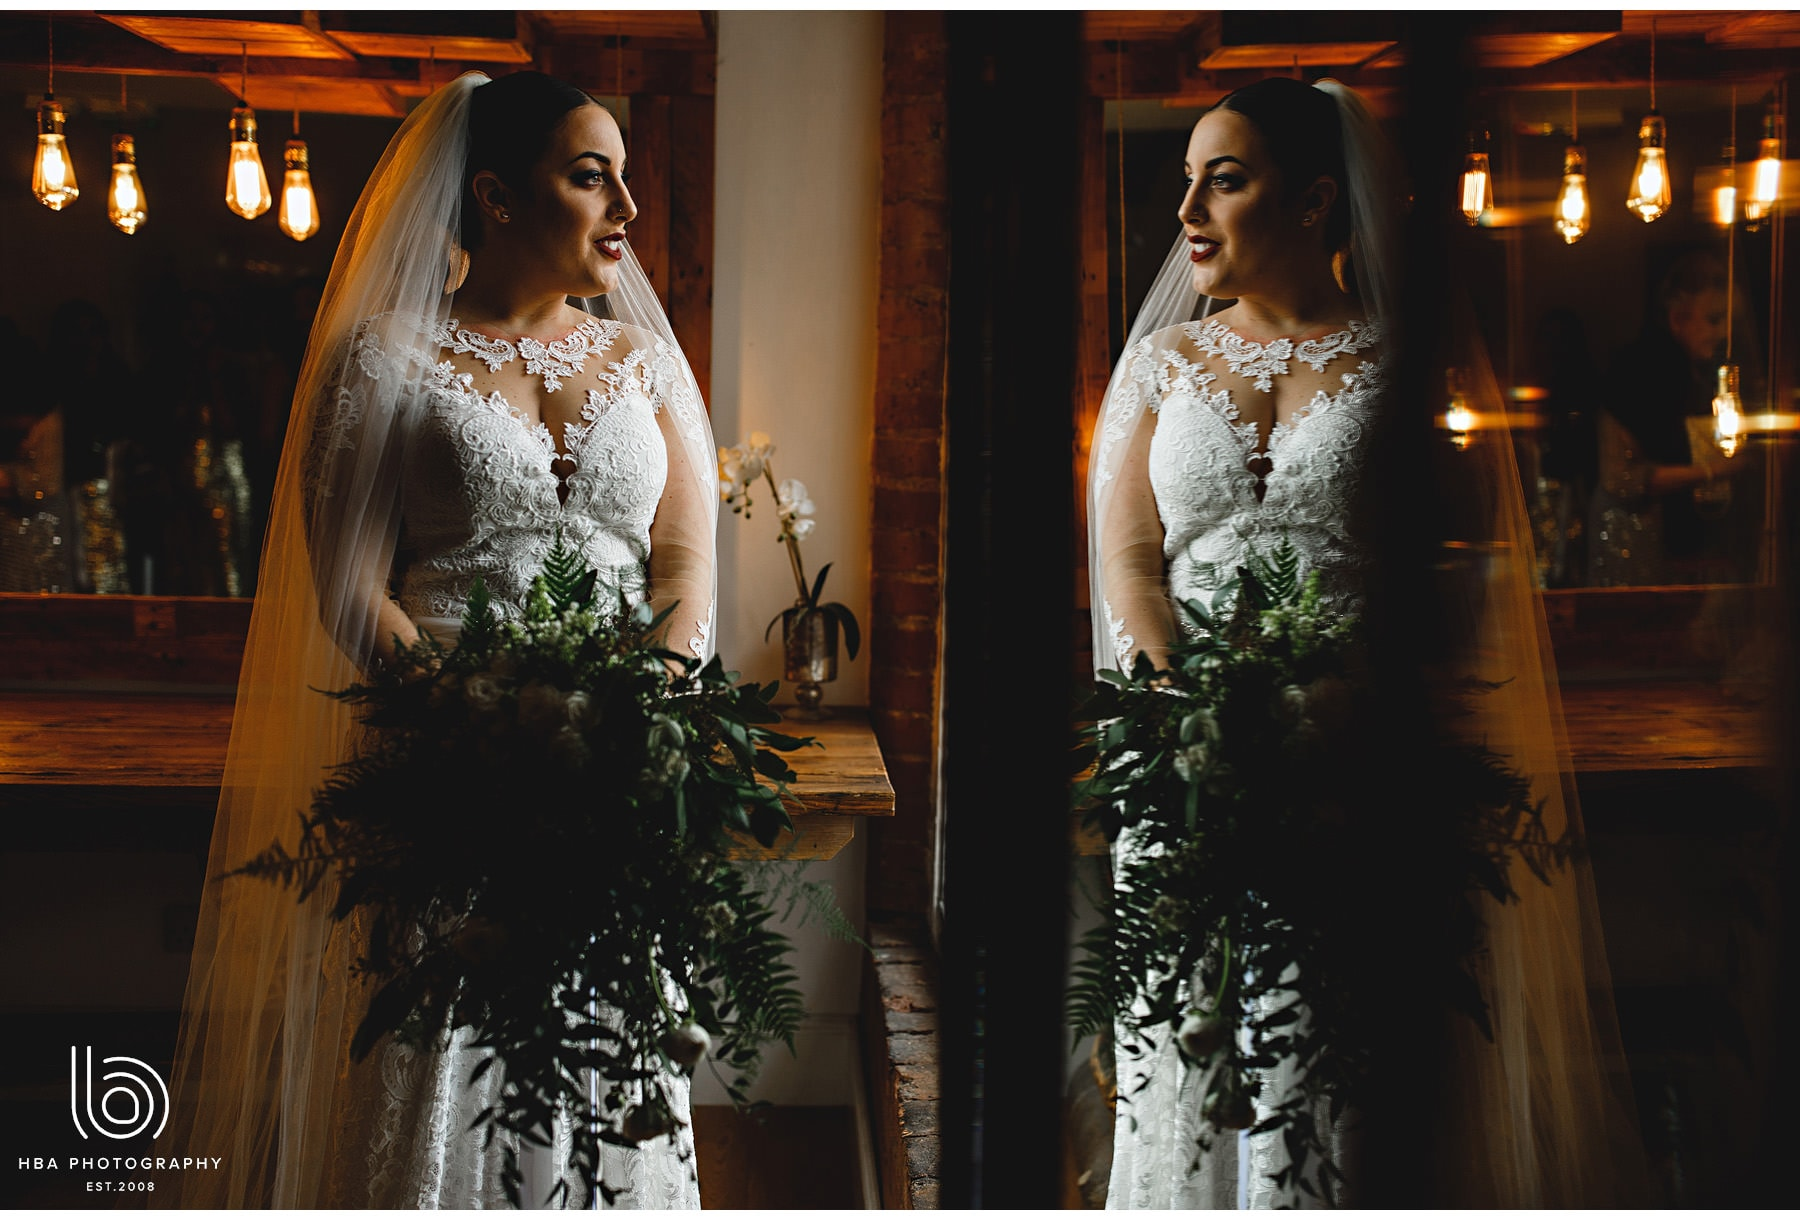 the bride and her reflection